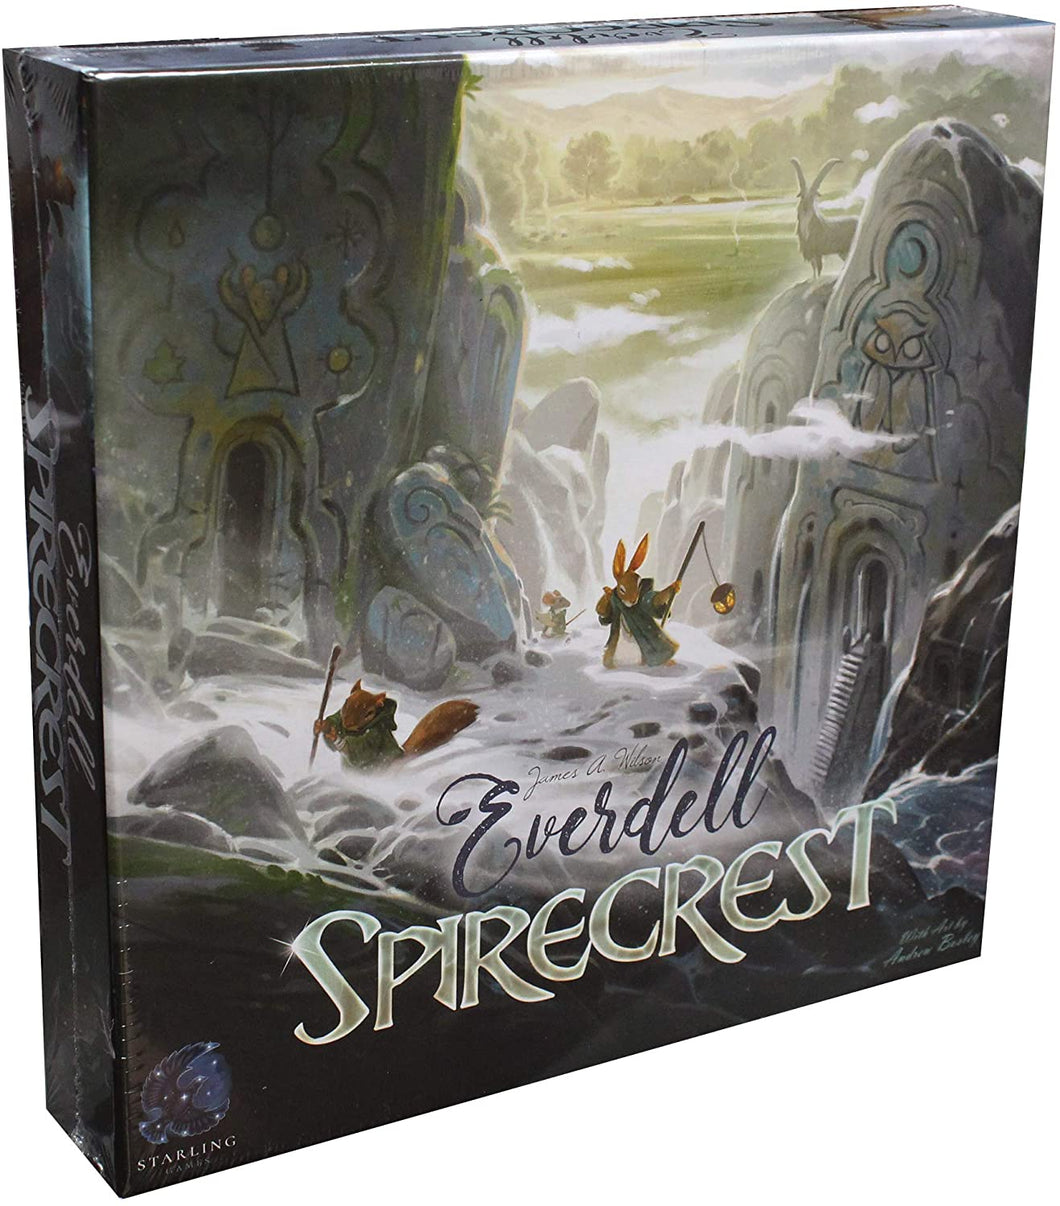 Everdell Spirecrest Expansion - Kickstarted Games